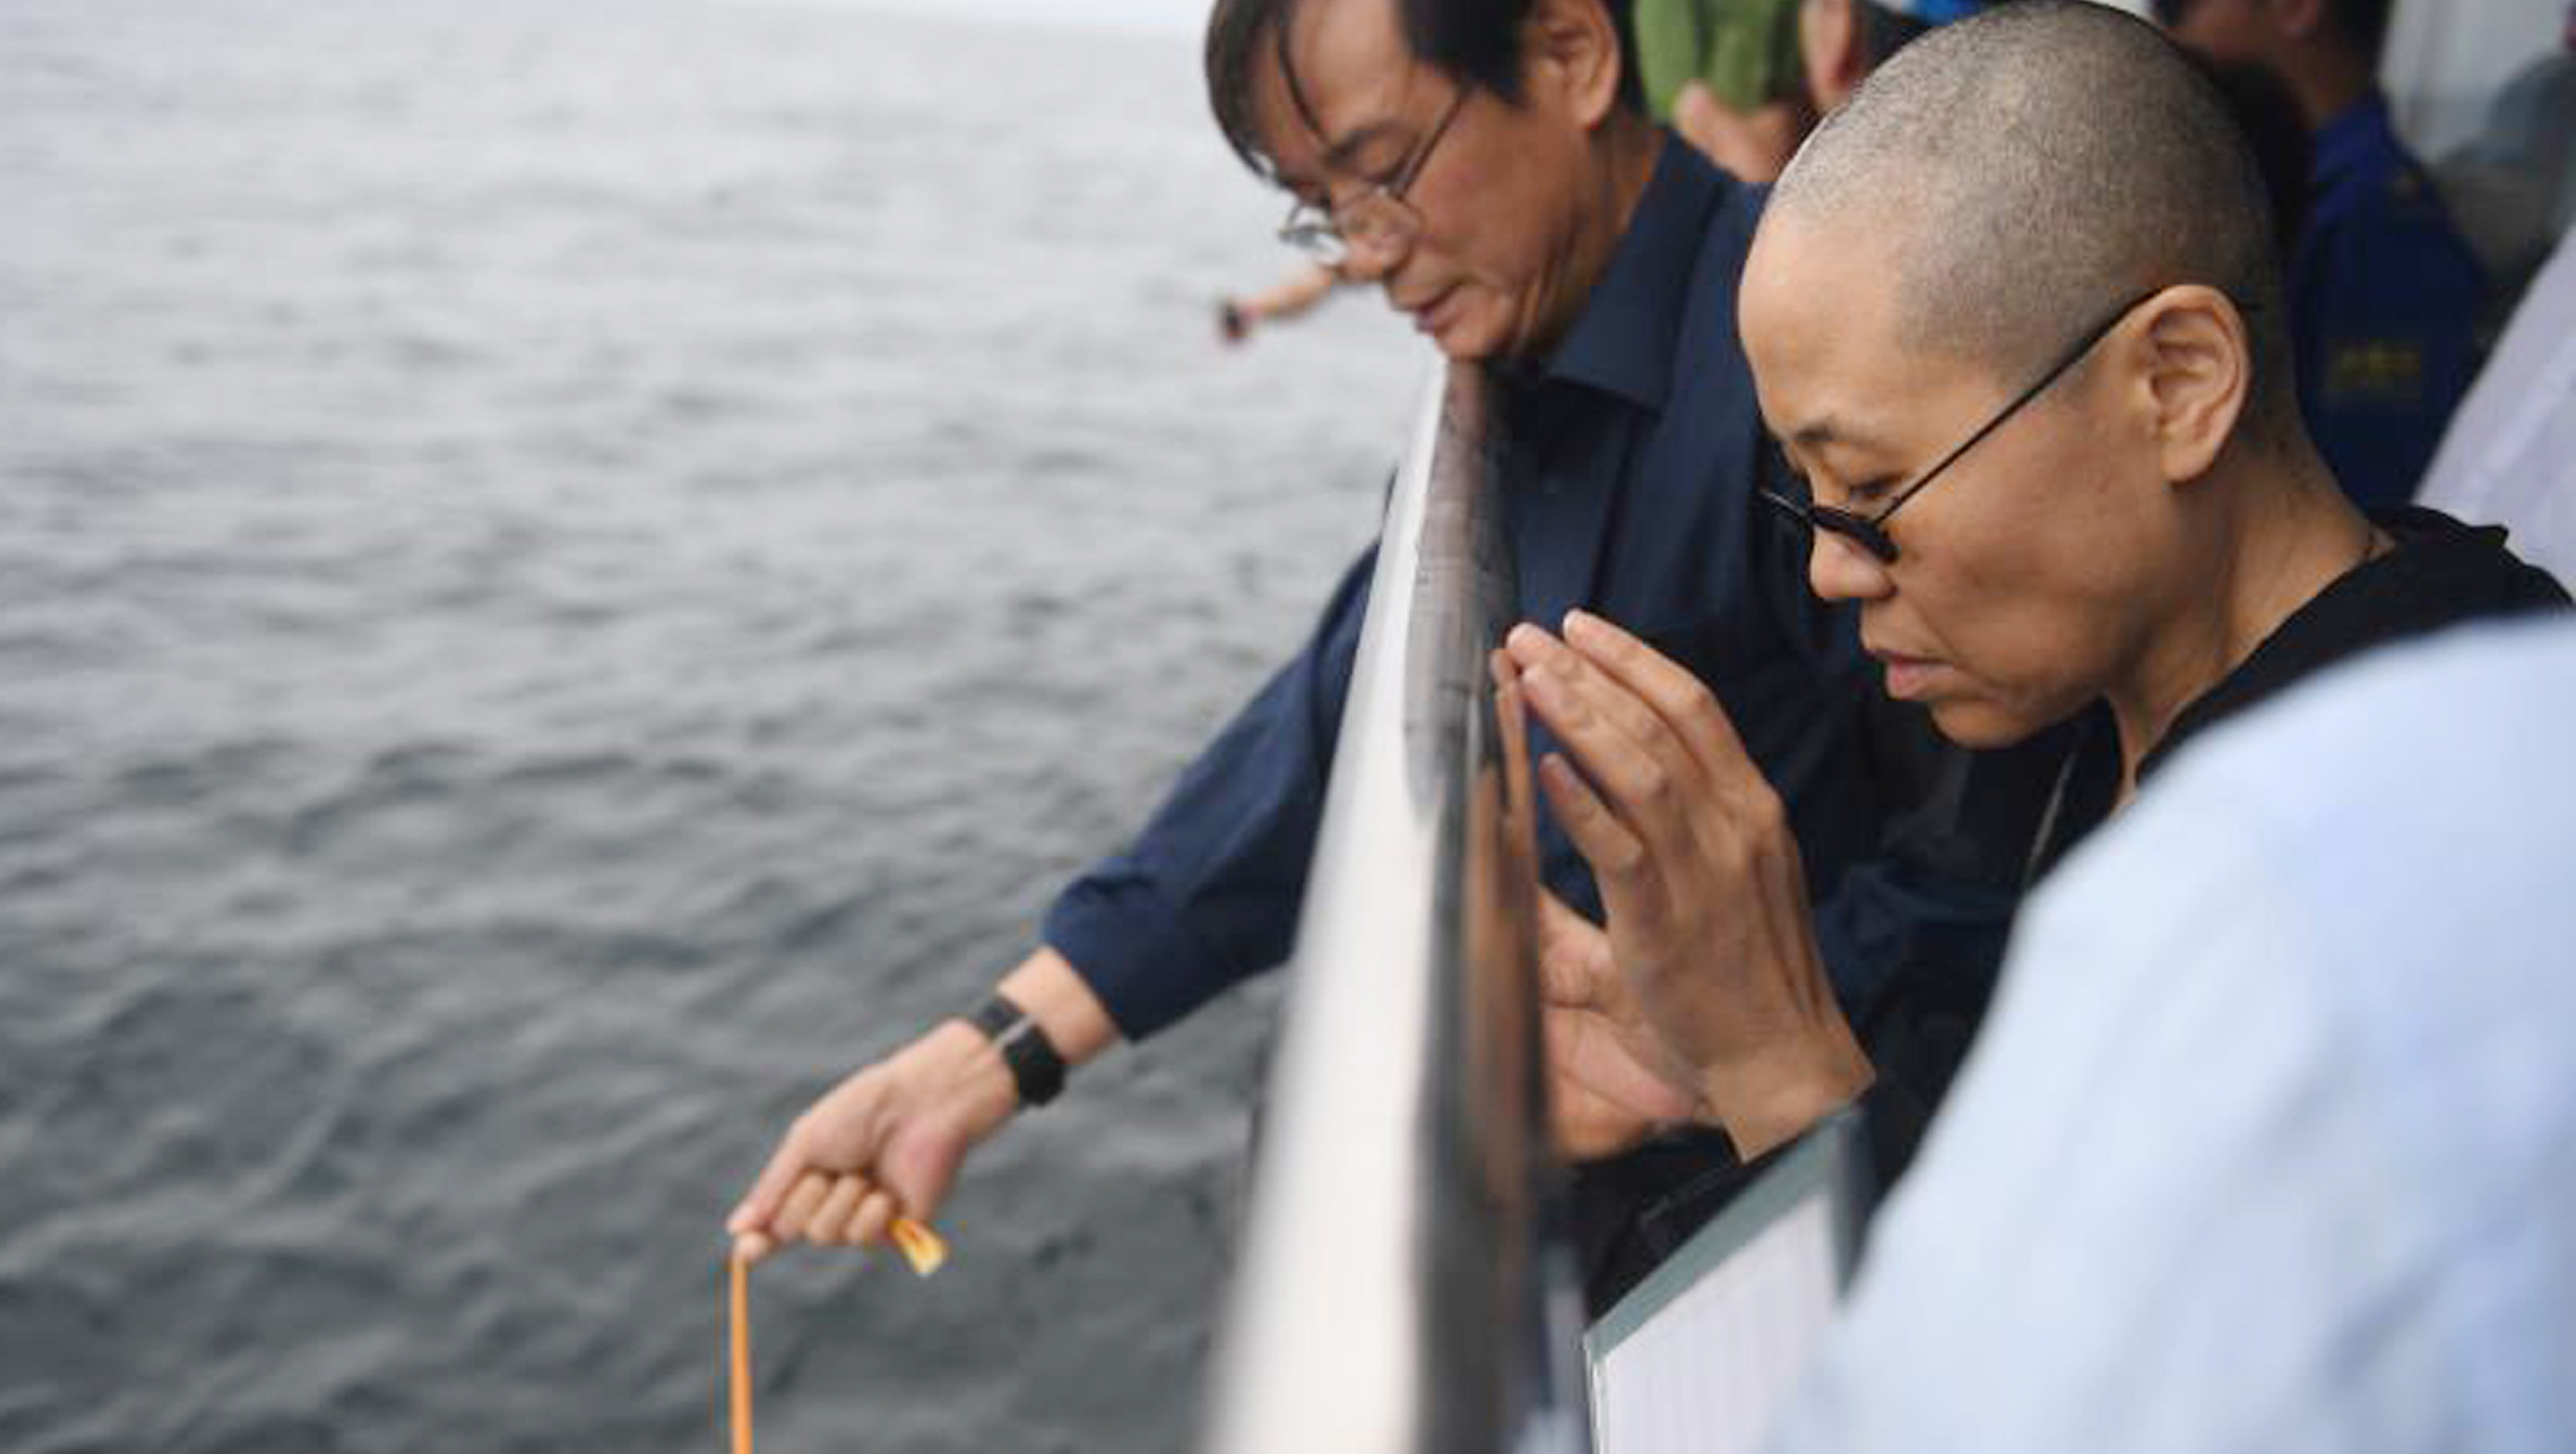 Liu Xia, the wife of Chinese Nobel Peace laureate Liu Xiaobo, watches as Liu's ashes are lowered into the water.